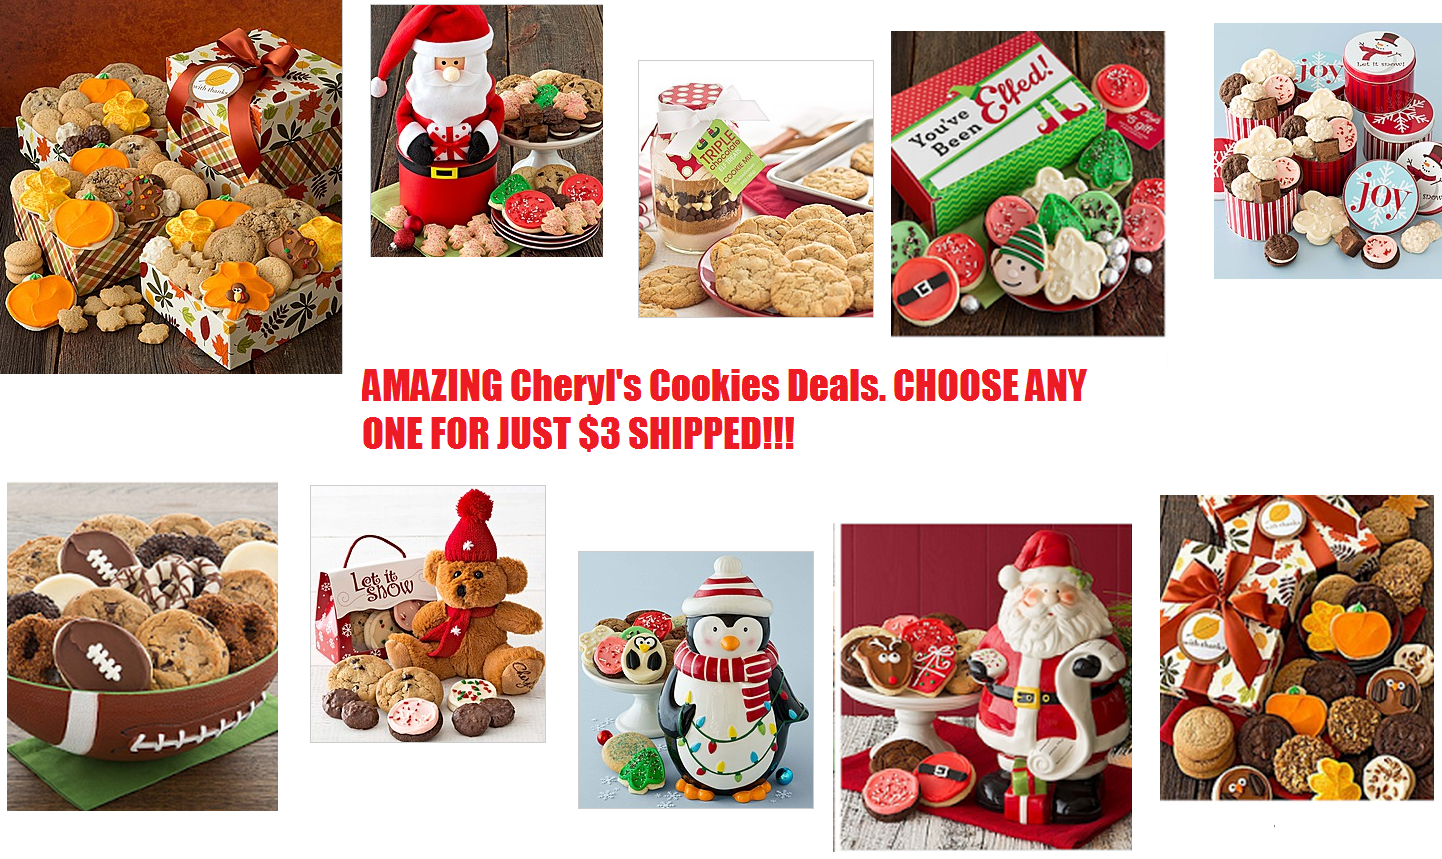 Cheryl's cookies coupon codes